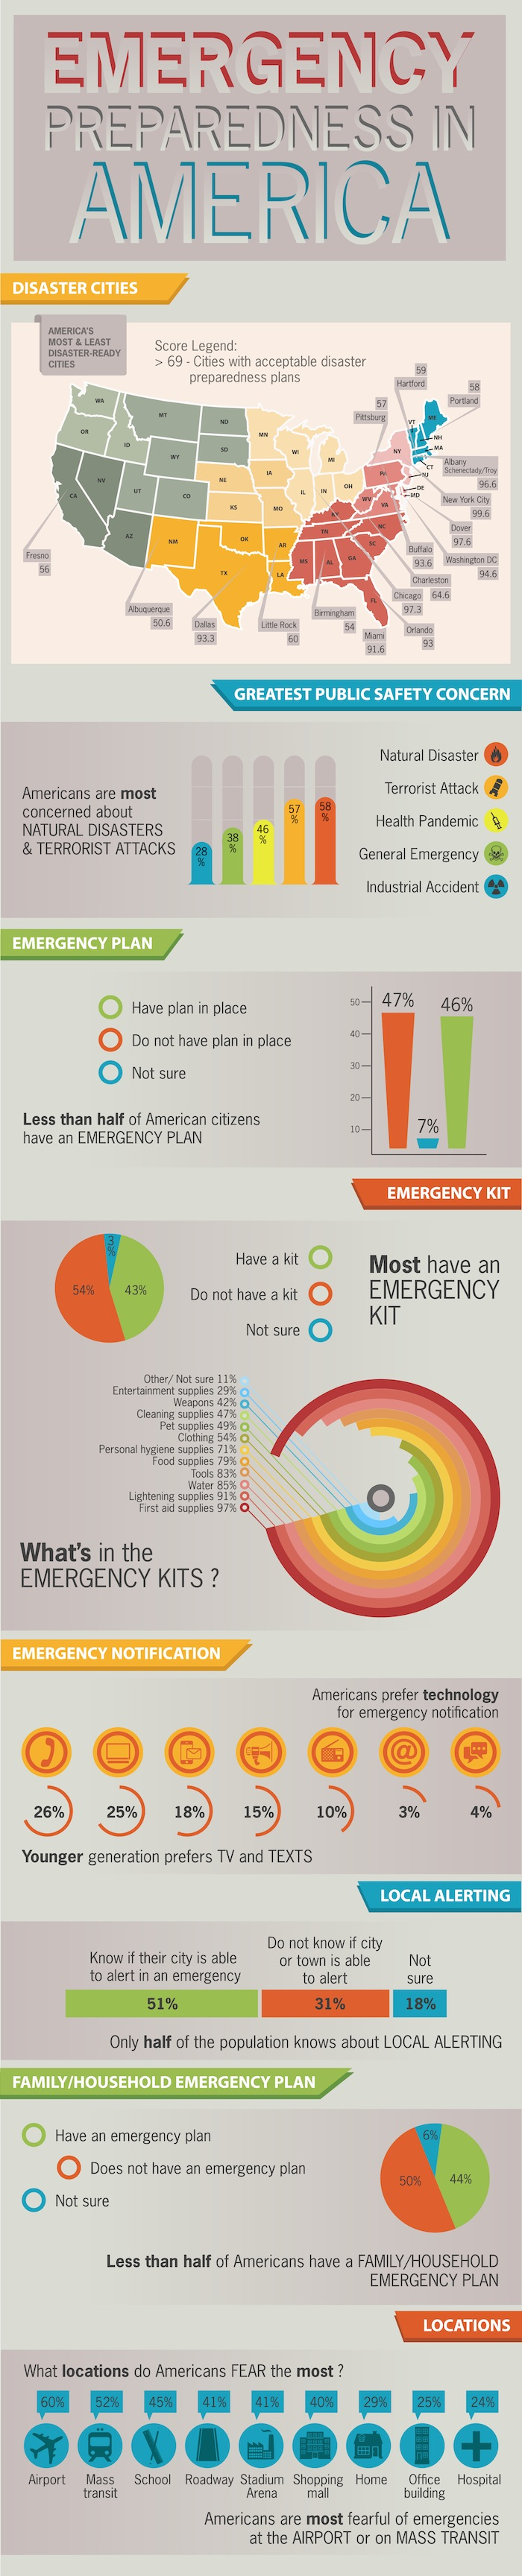 Infographic Comparing Emergency Preparedness In America